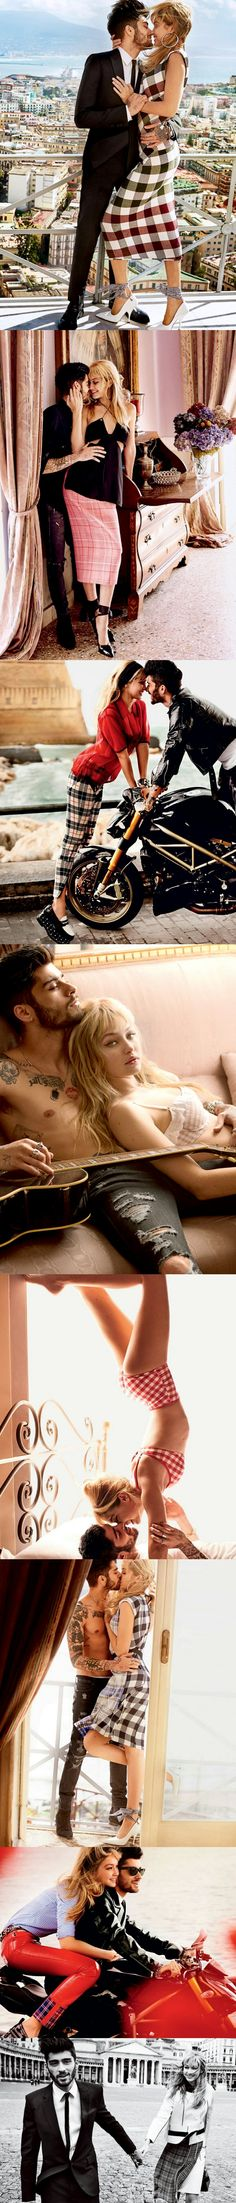 Zayn Malik and #Gigi Hadid for Vogue US .  Pictures - Mario Testino © #Zayn Malik